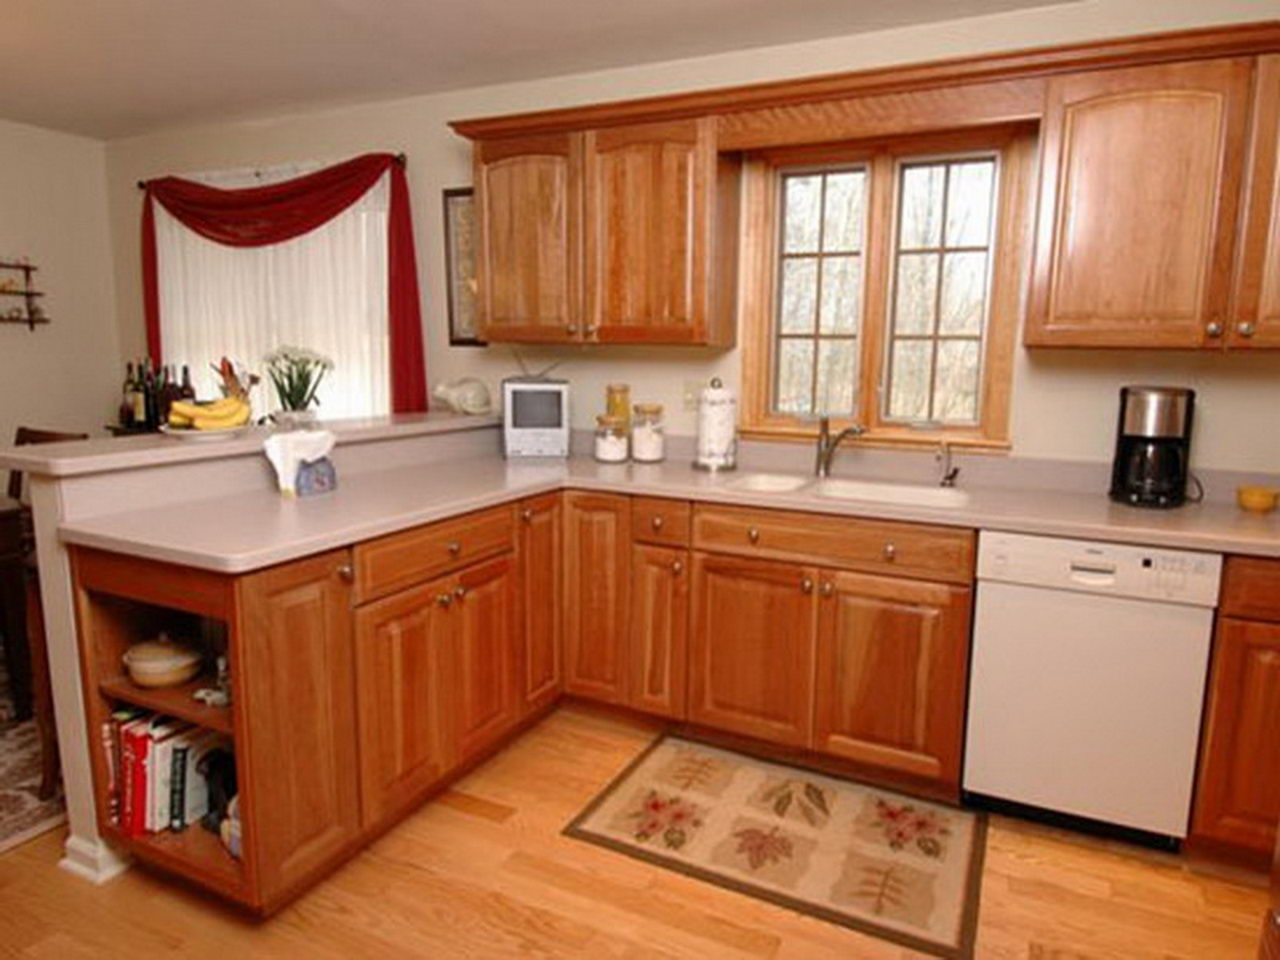 Kitchen cabinets and storage ideas homedizz for Different kitchen design ideas